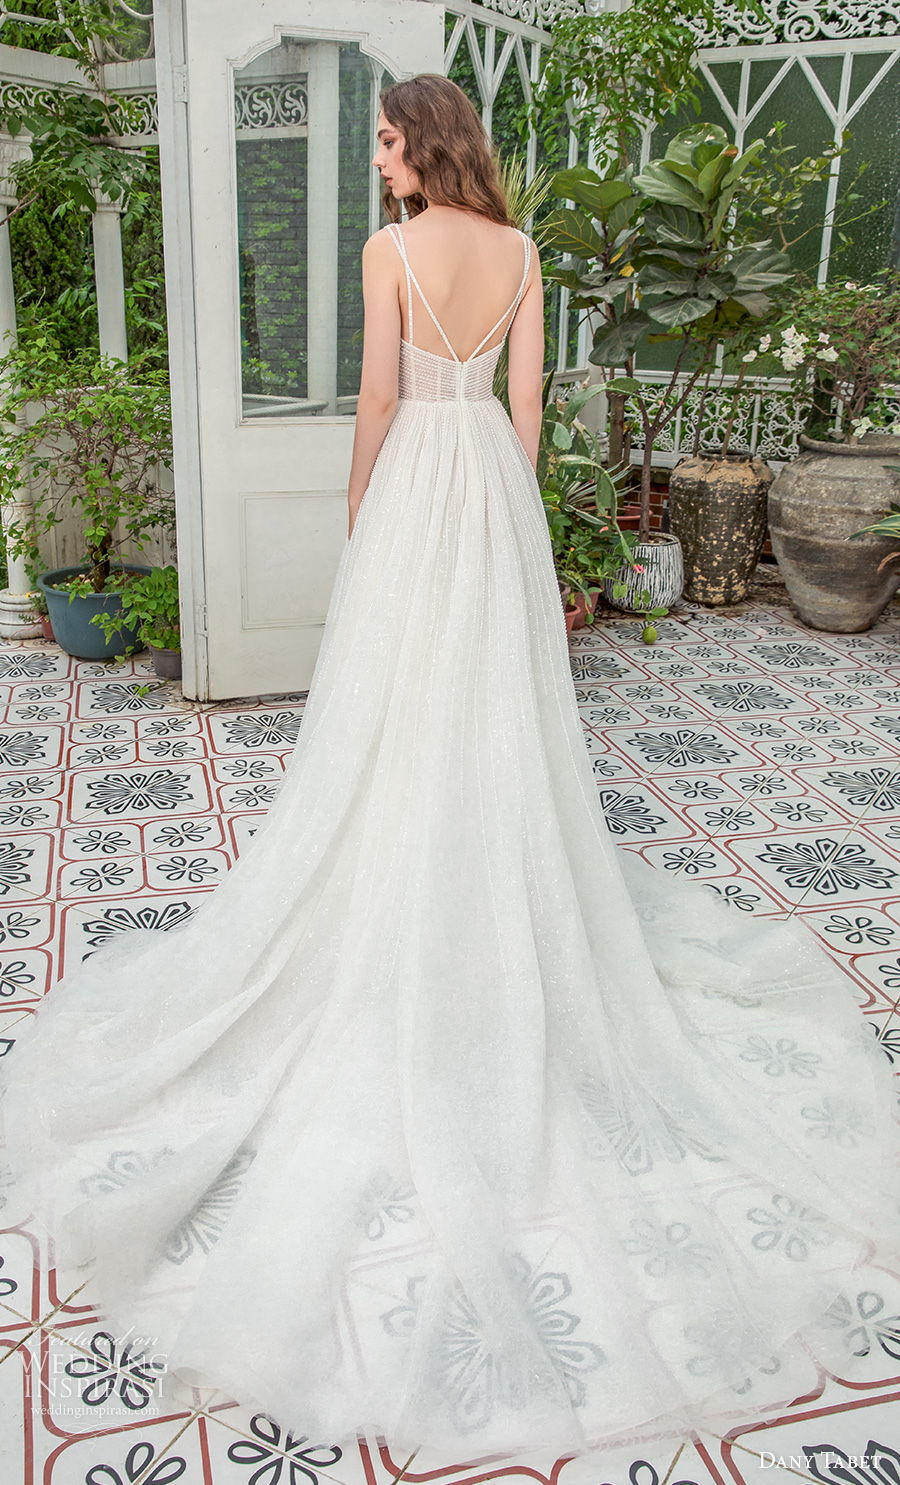 dany tabet 2021 emerge bridal sleeveless deep v neck full embellishment glitter glamorous romantic a  line wedding dress backless v back chapel train (7) bv